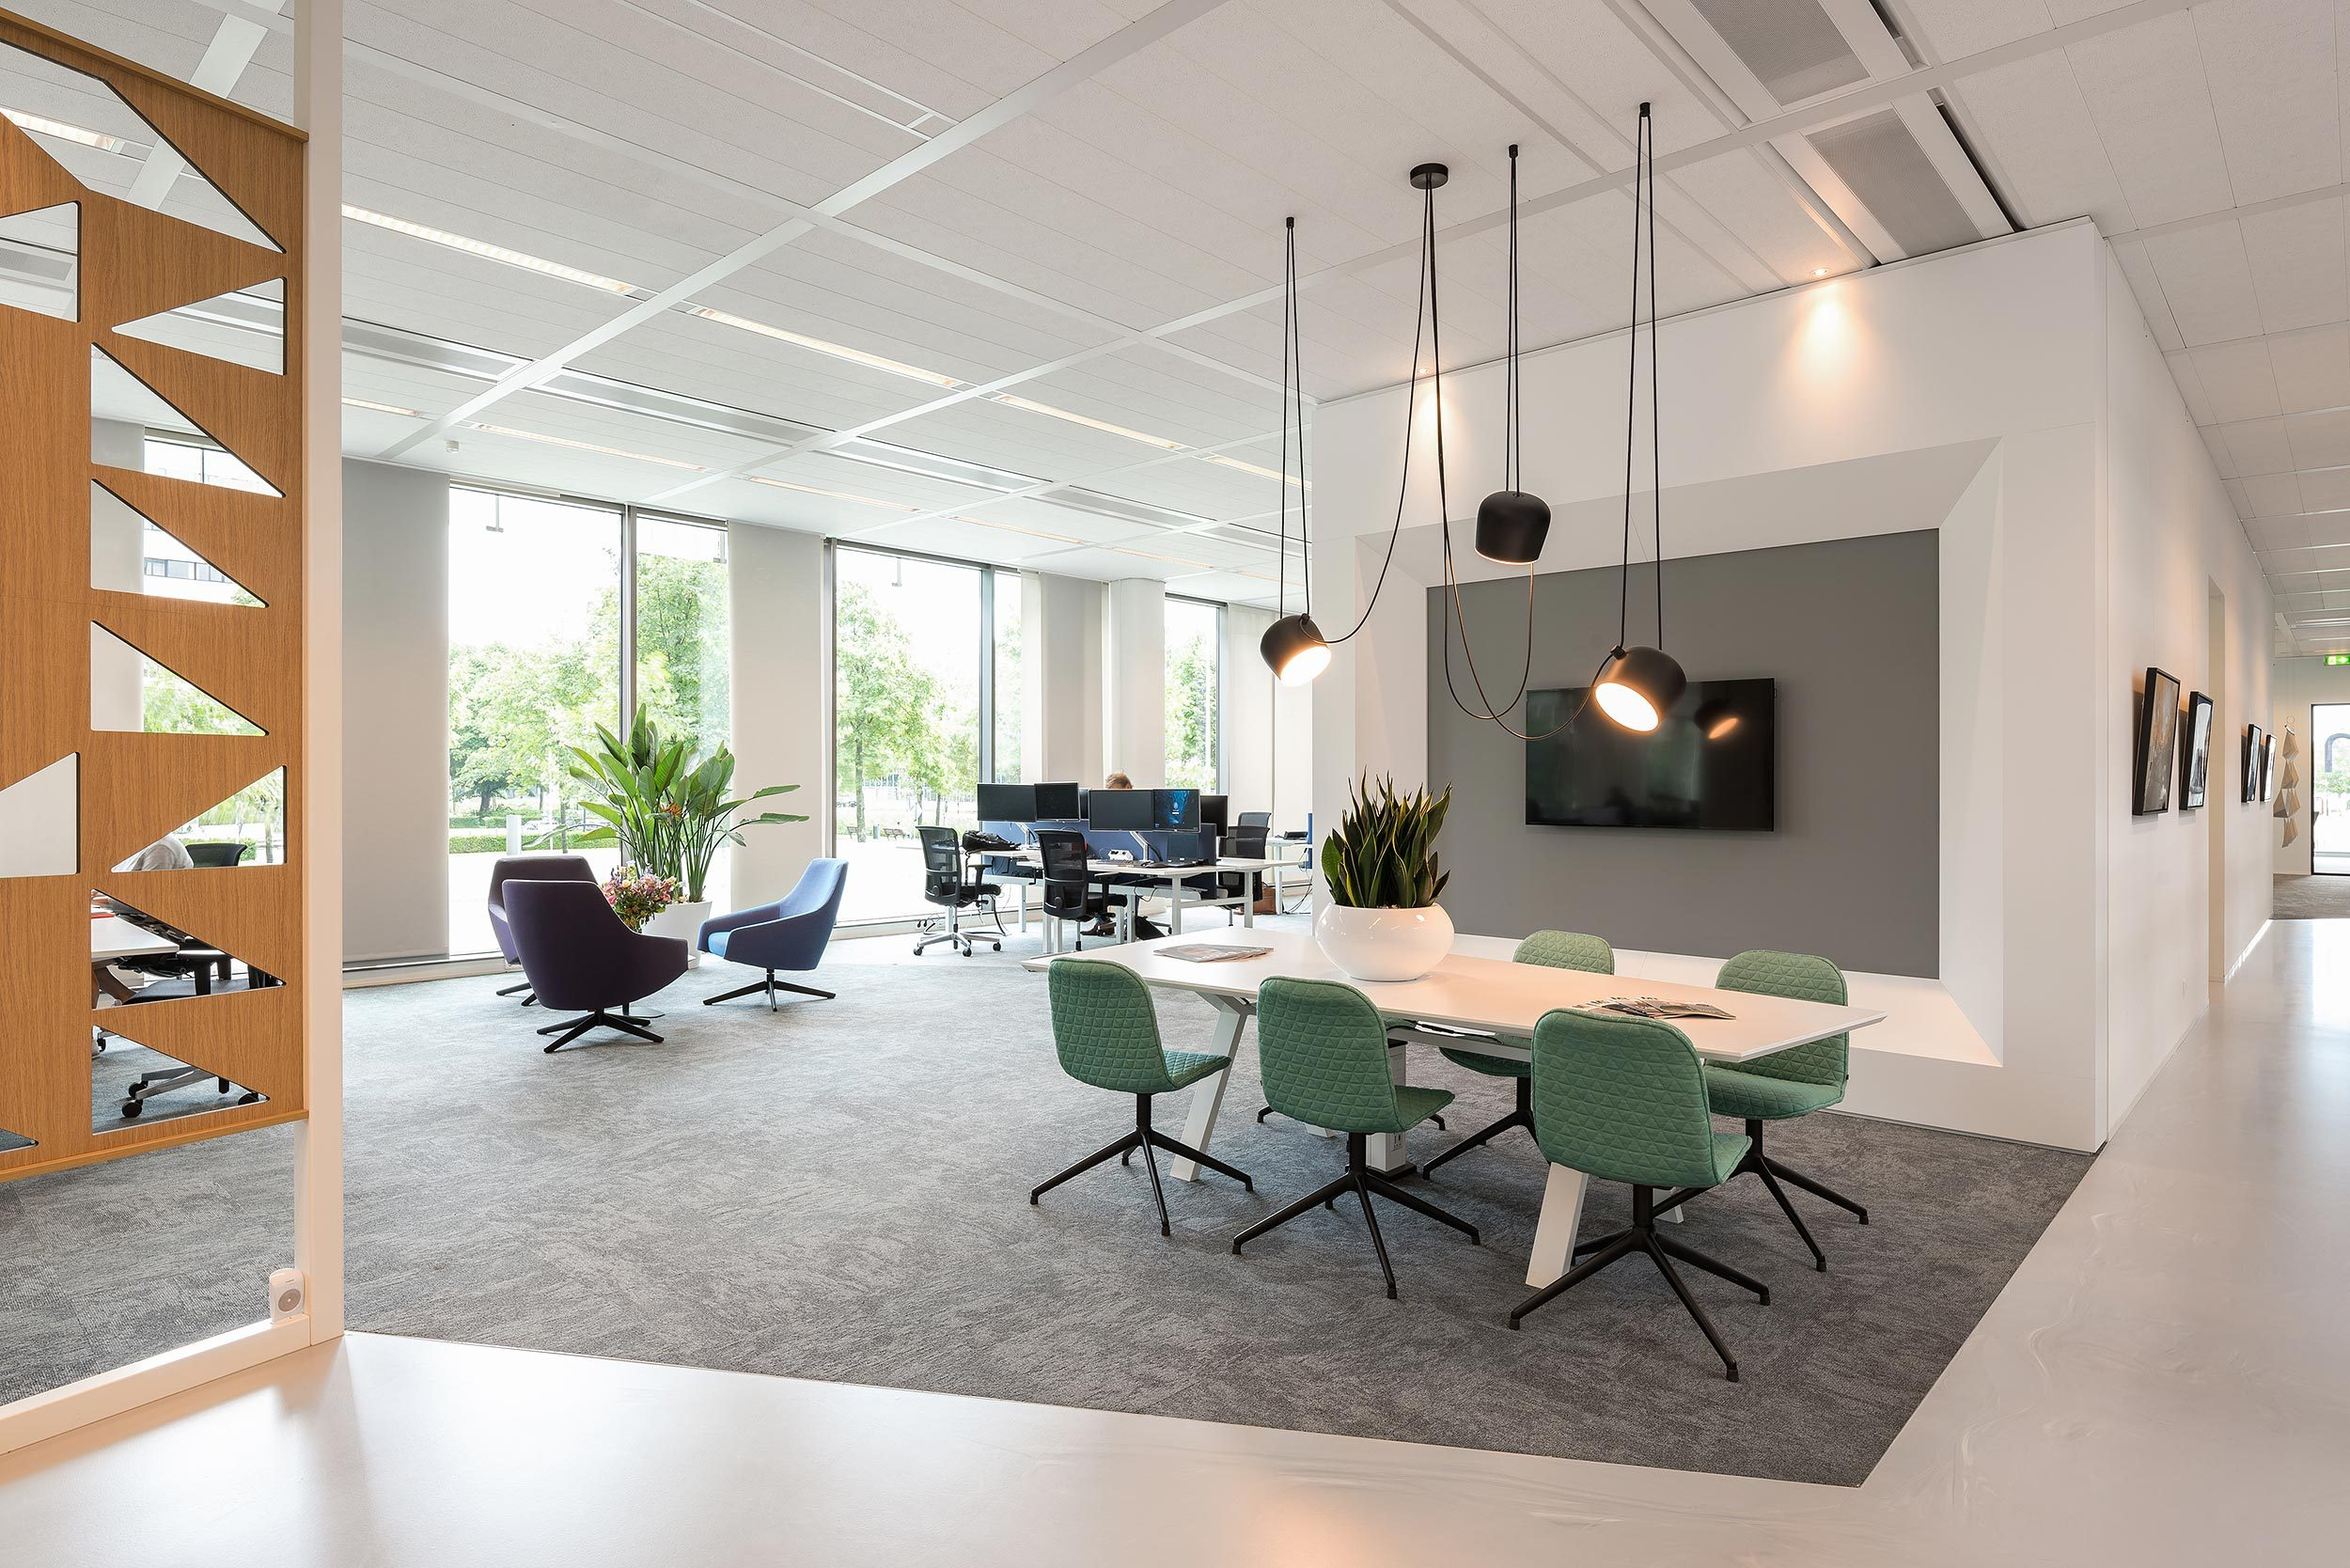 Apollo Office Building, Amsterdam - Merin